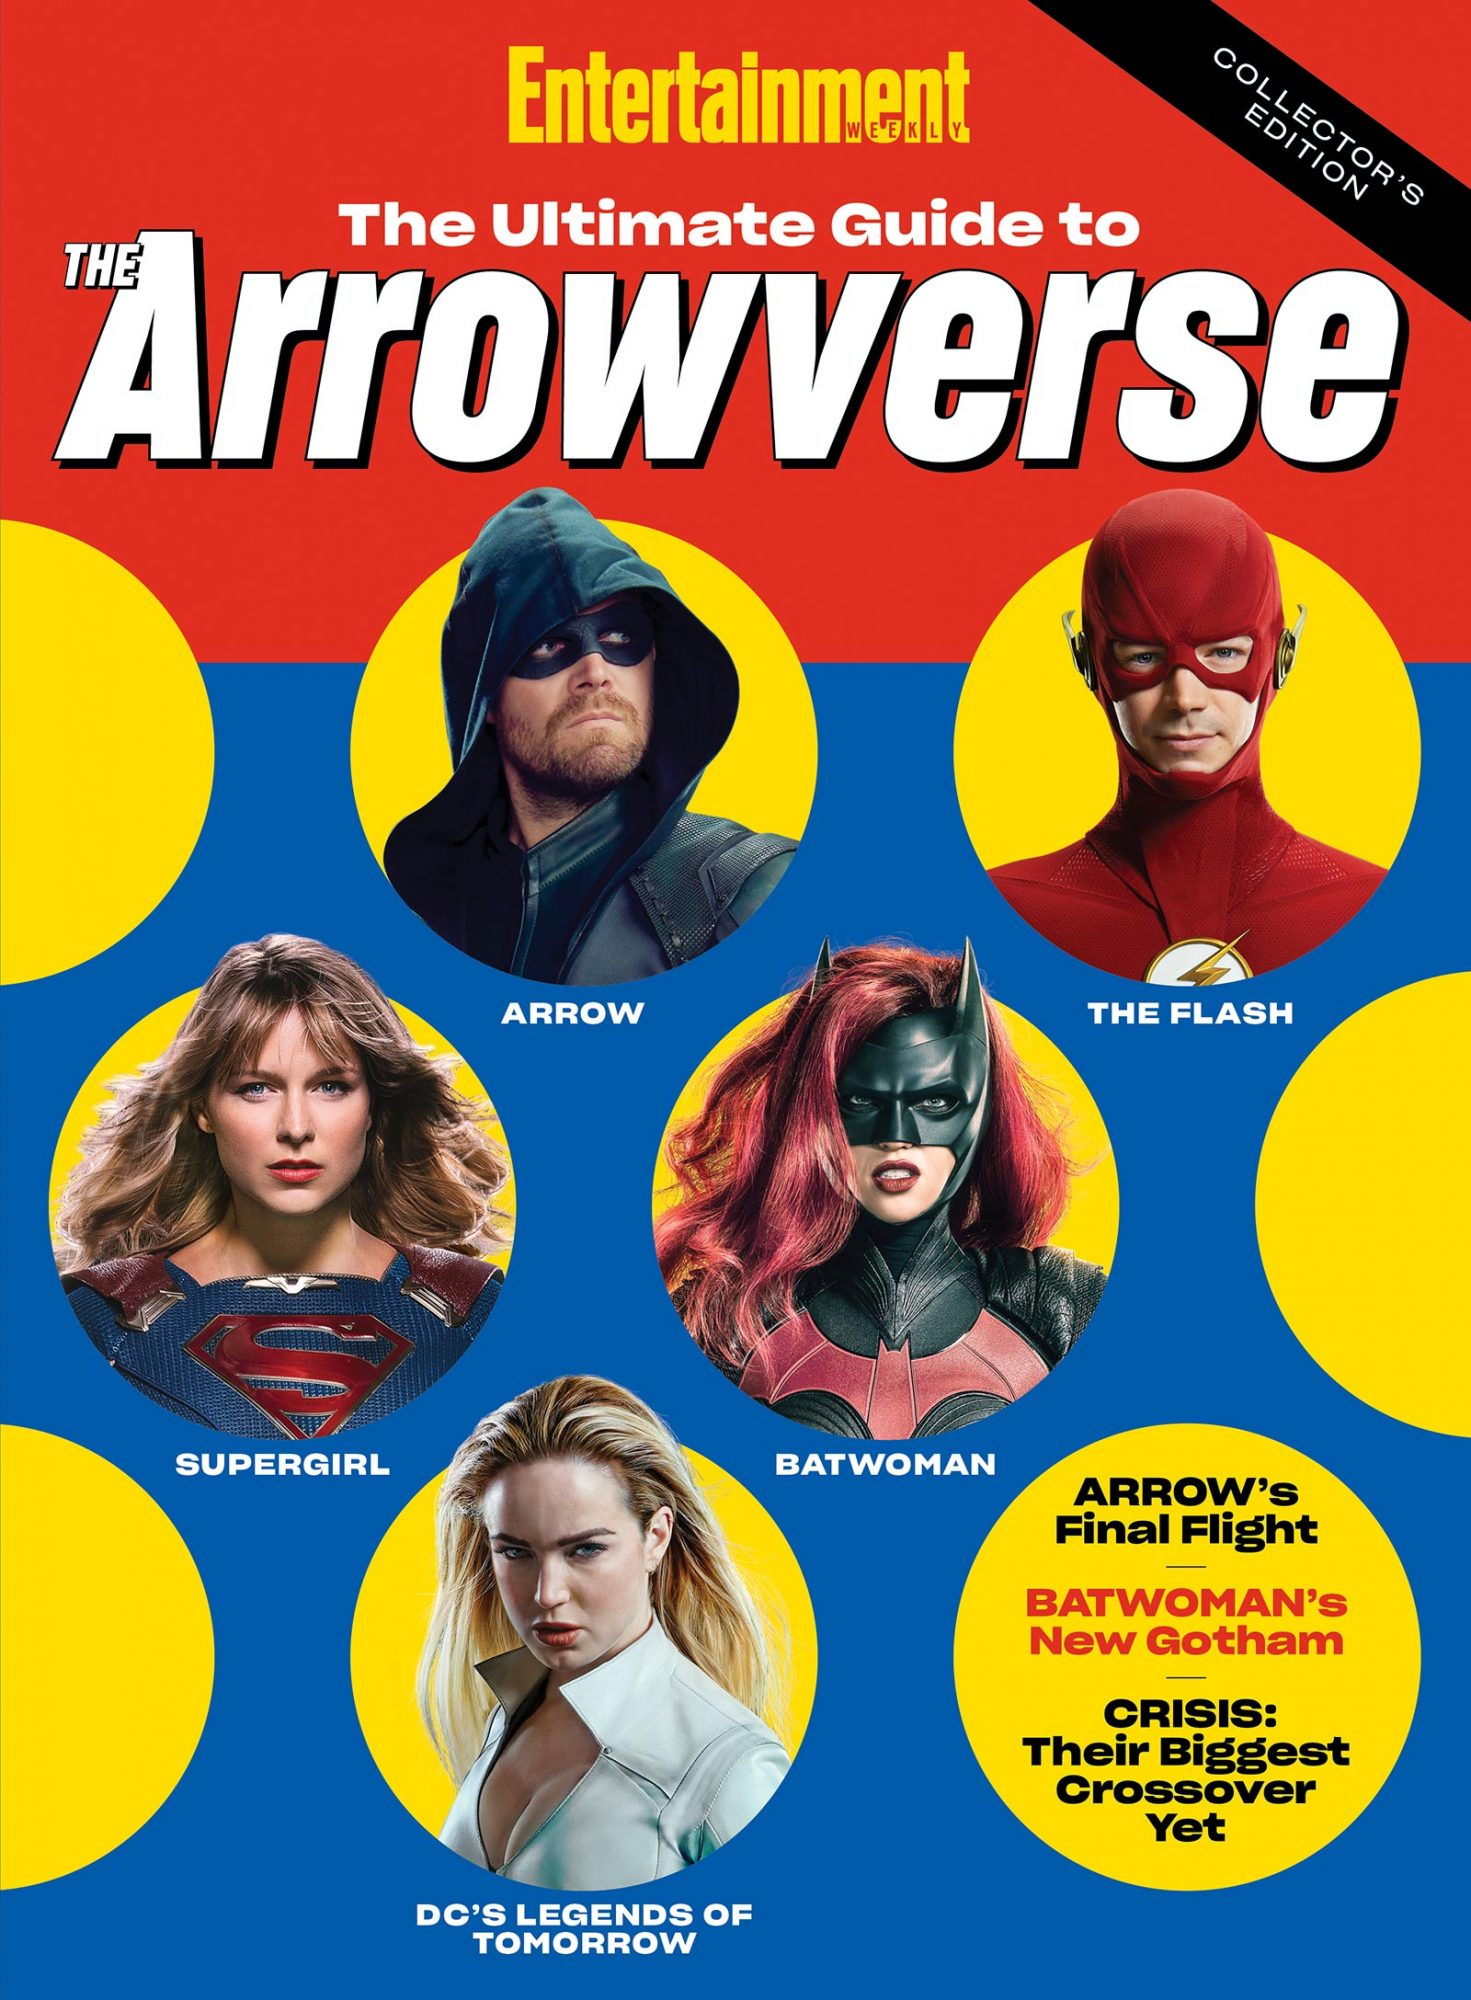 The Ultimate Guide to the Arrowverse